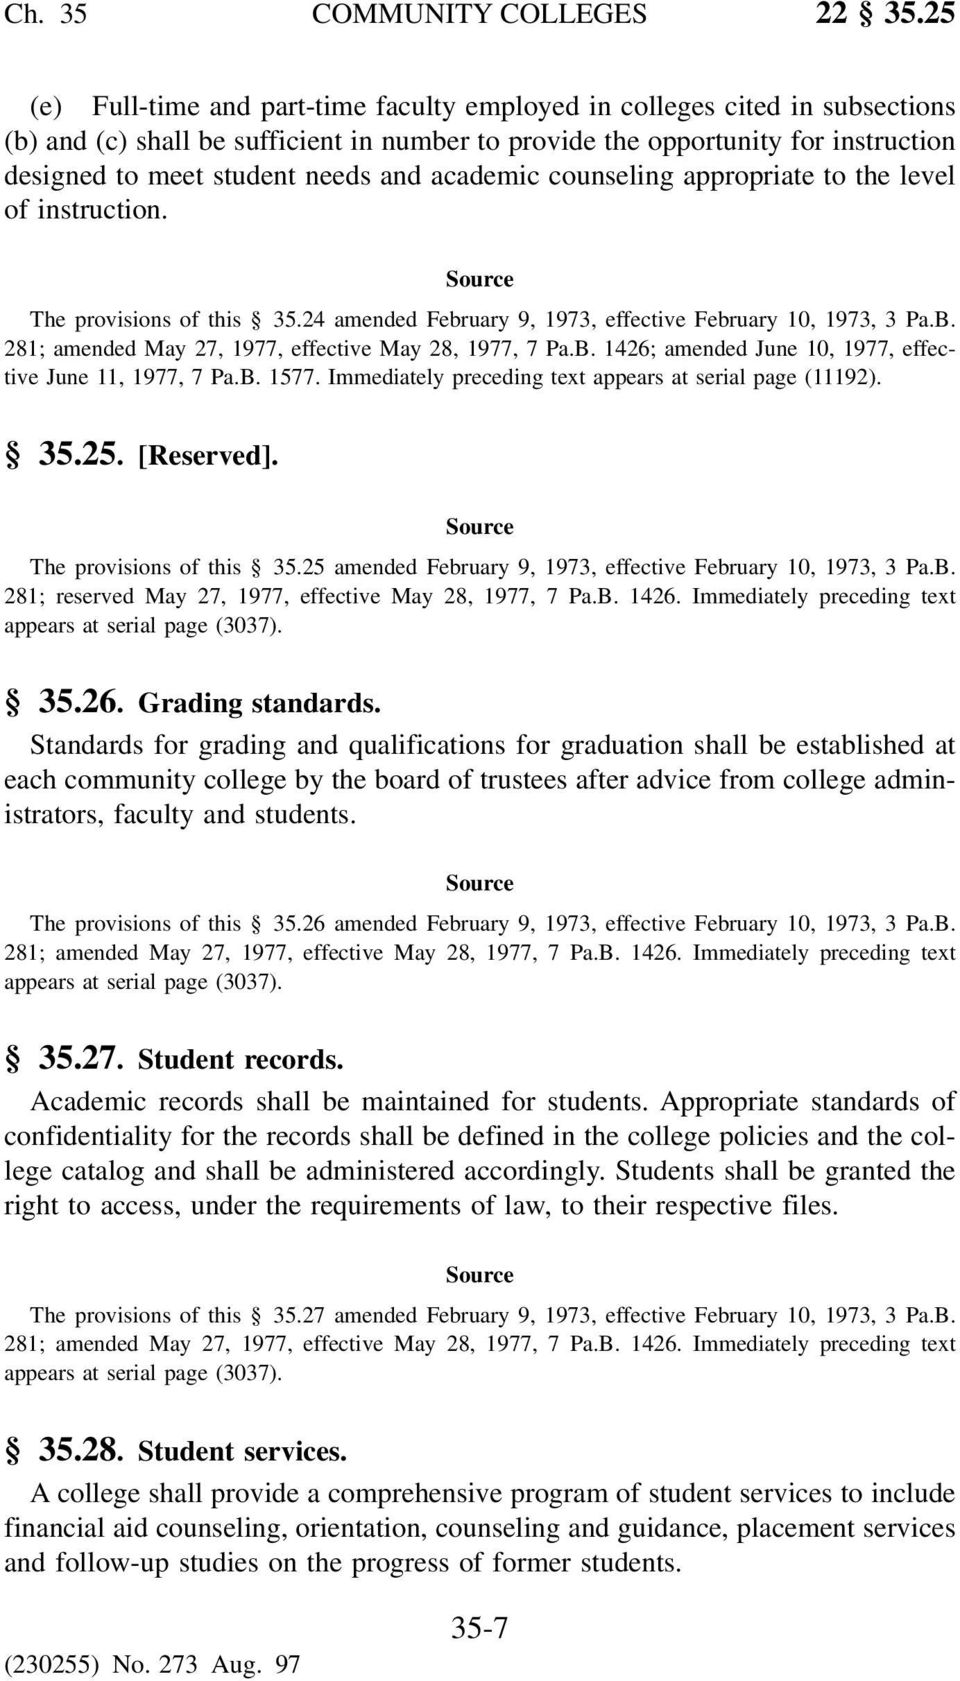 and academic counseling appropriate to the level of instruction. The provisions of this 35.24 amended February 9, 1973, effective February 10, 1973, 3 Pa.B.